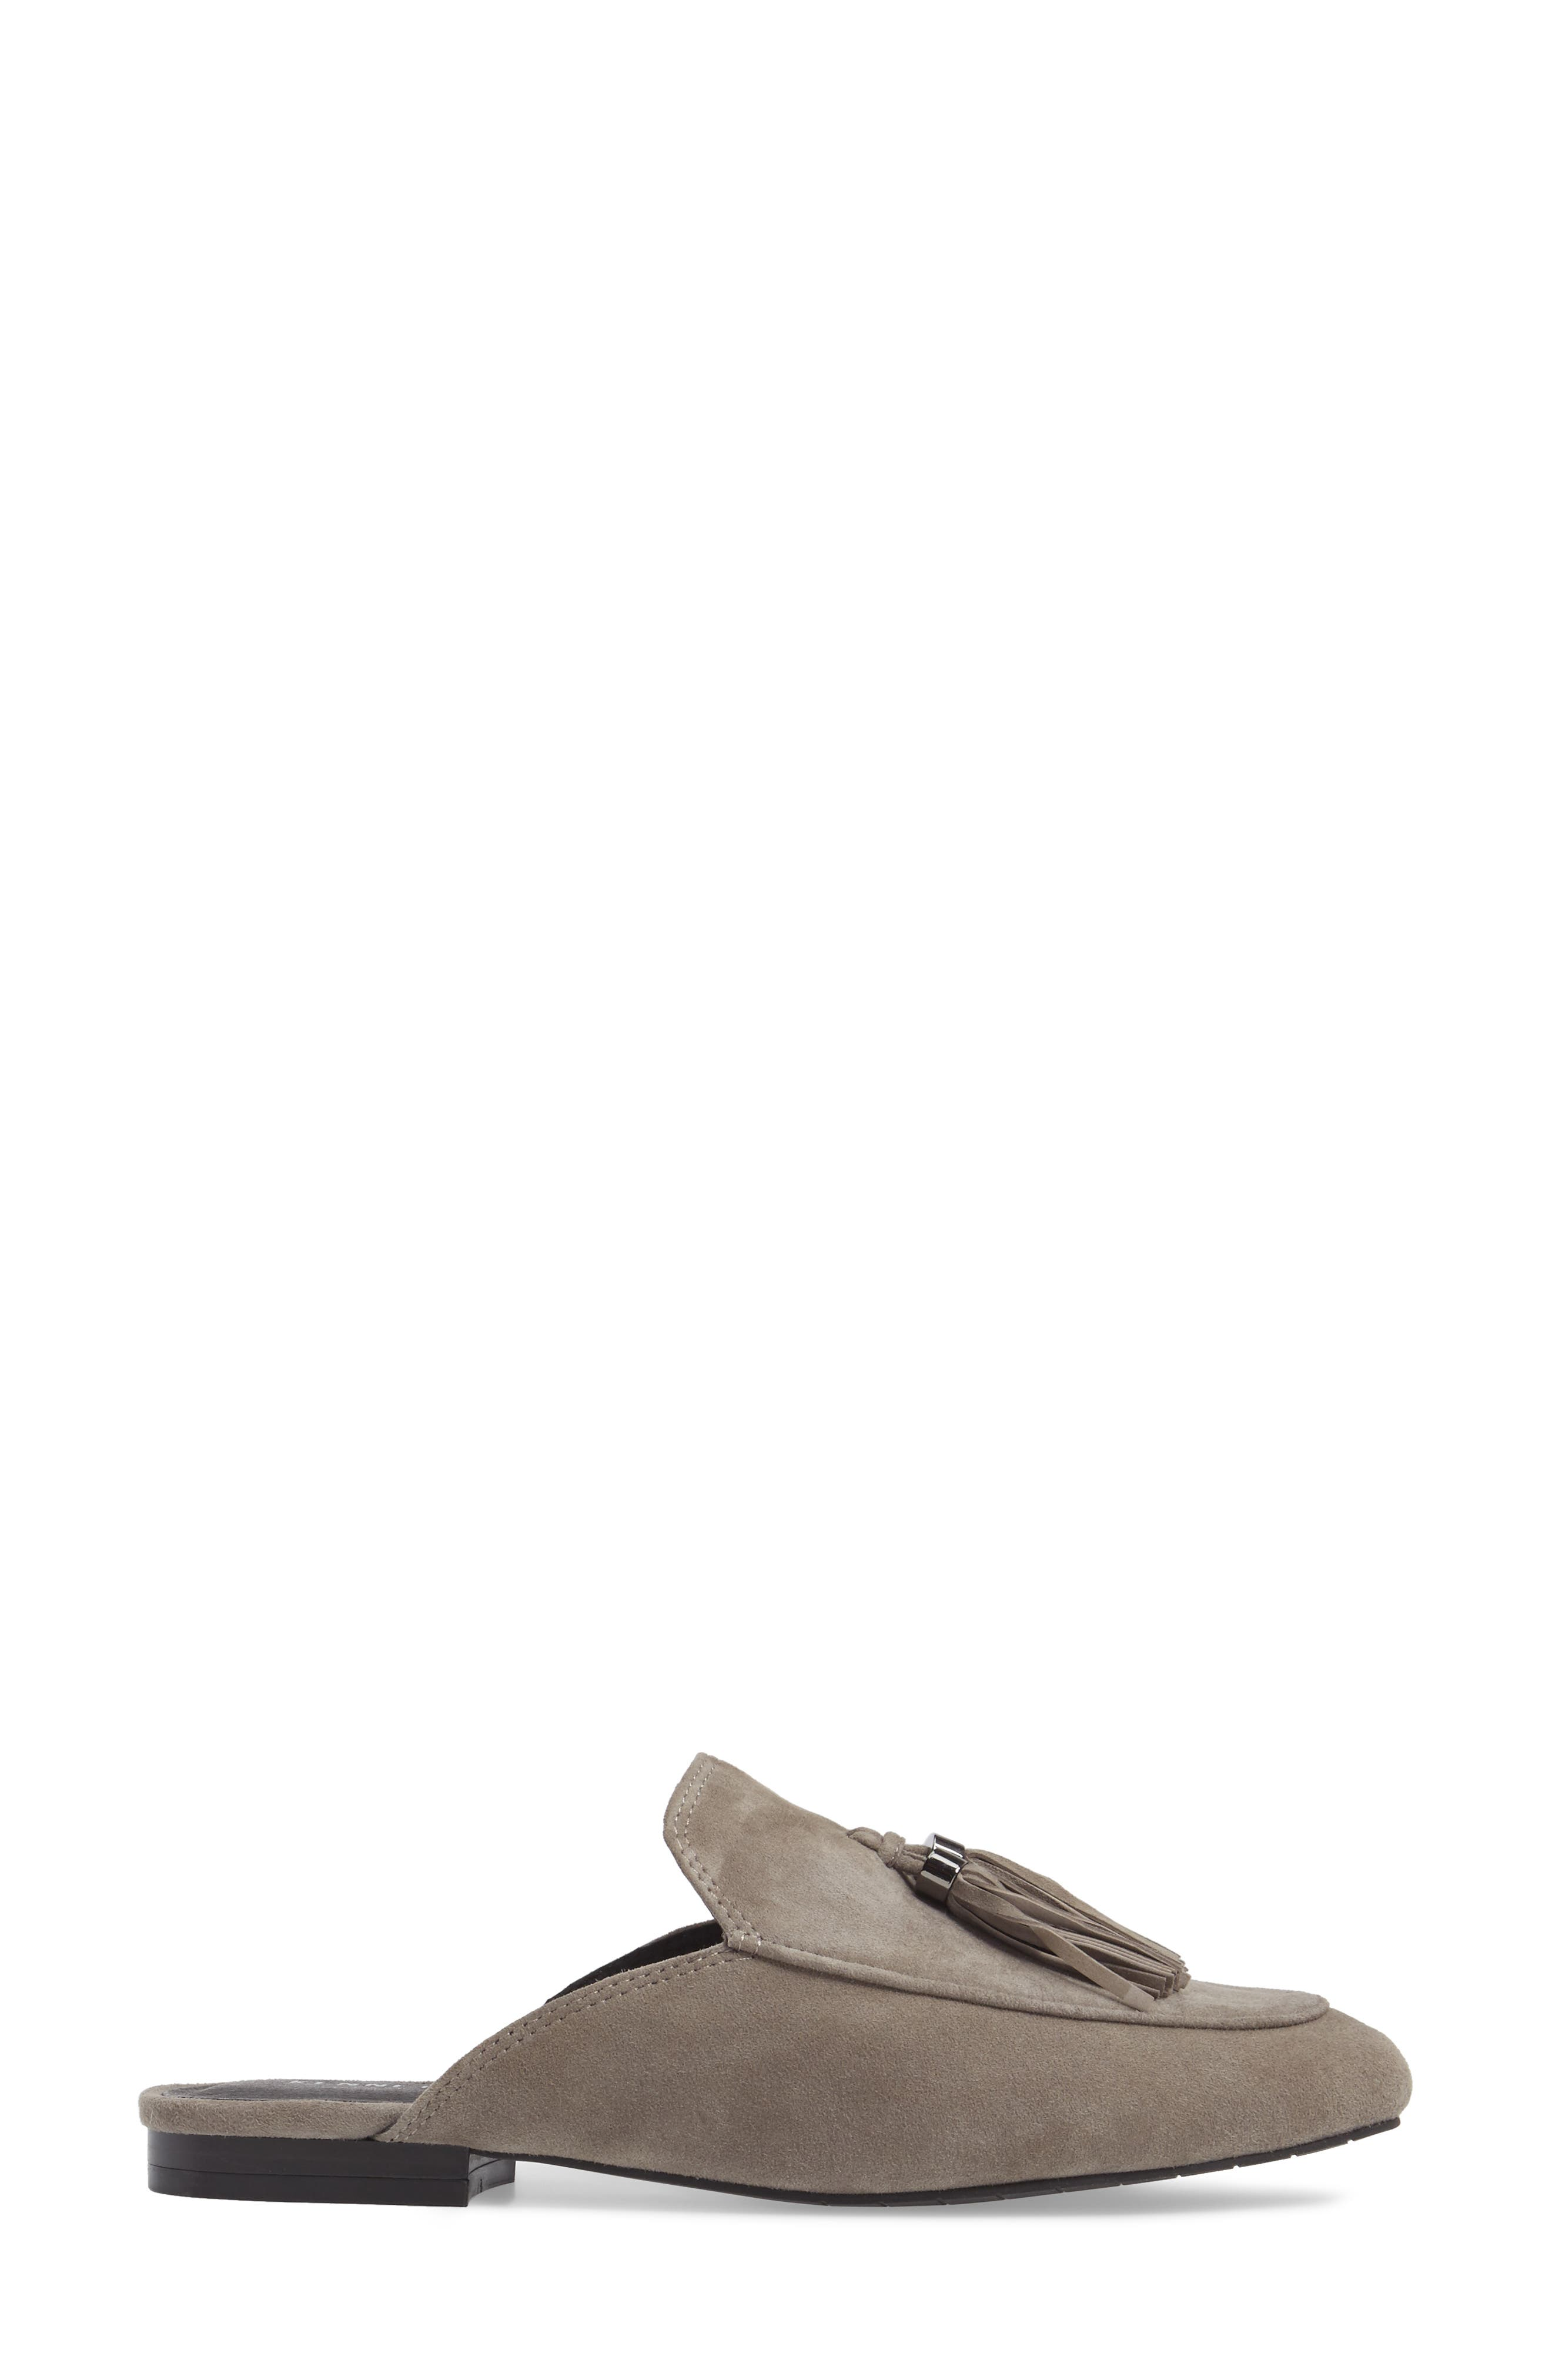 Whinnie Loafer Mule,                             Alternate thumbnail 3, color,                             090